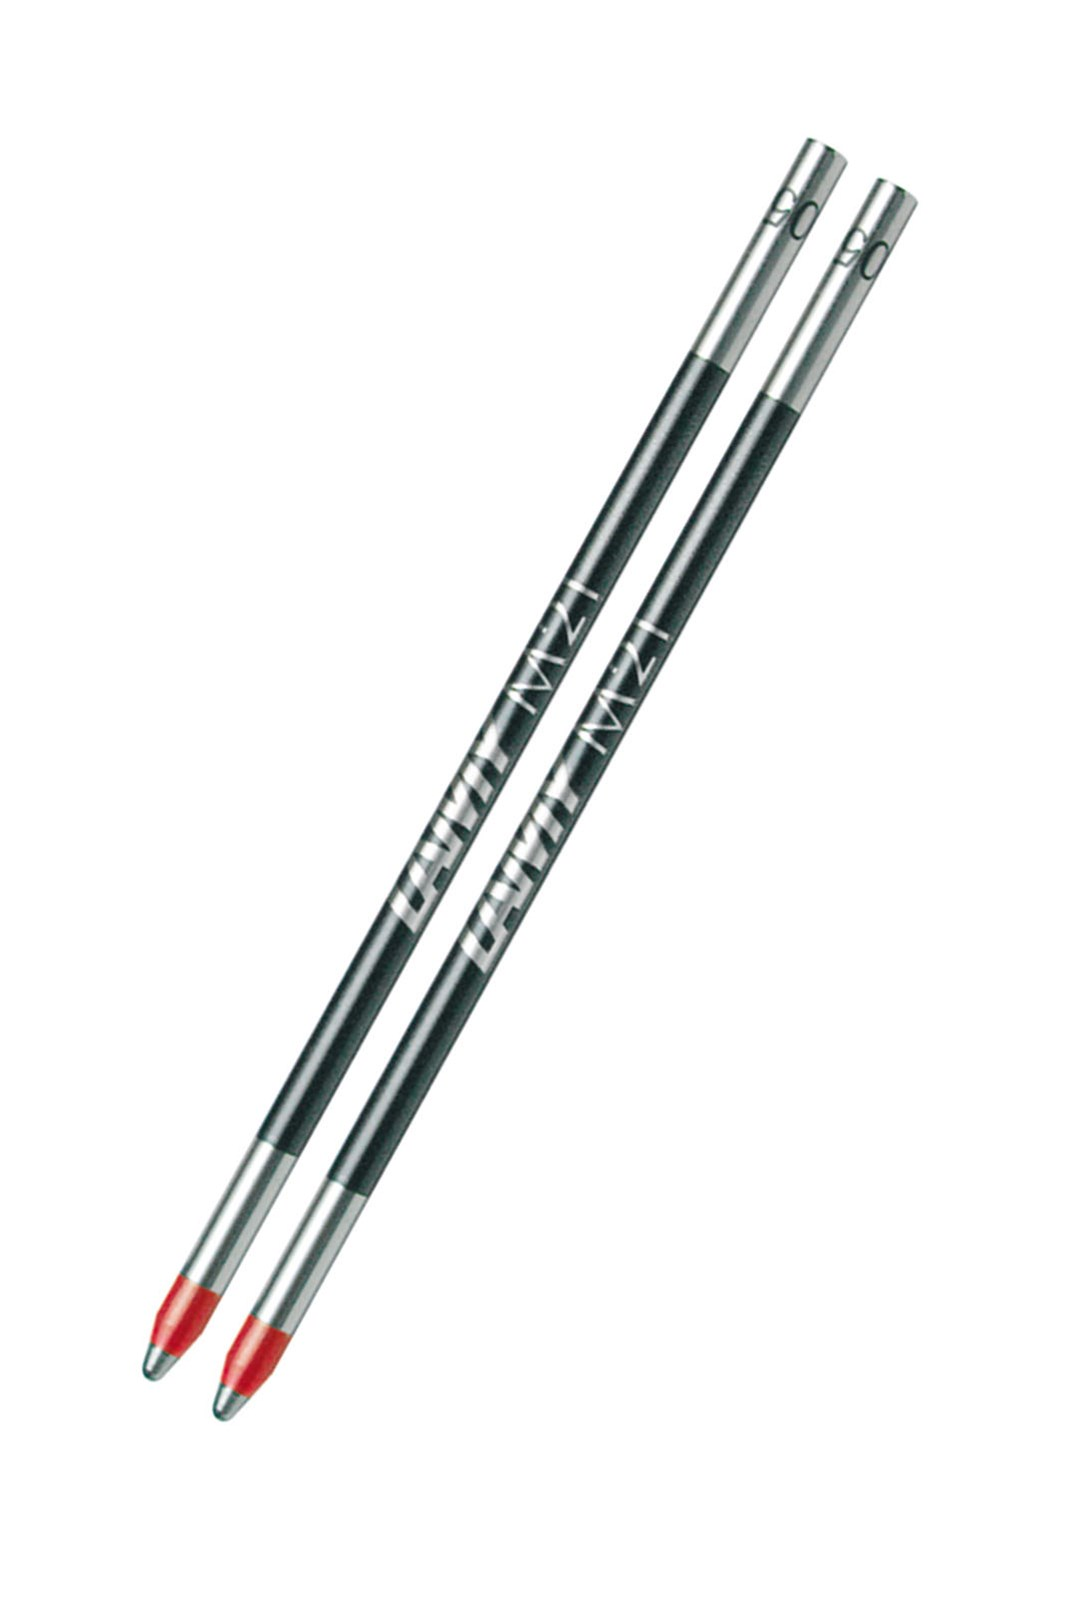 LAMY - M21 Ballpoint Pen Refill - Hangsell - Set of 2 - Red